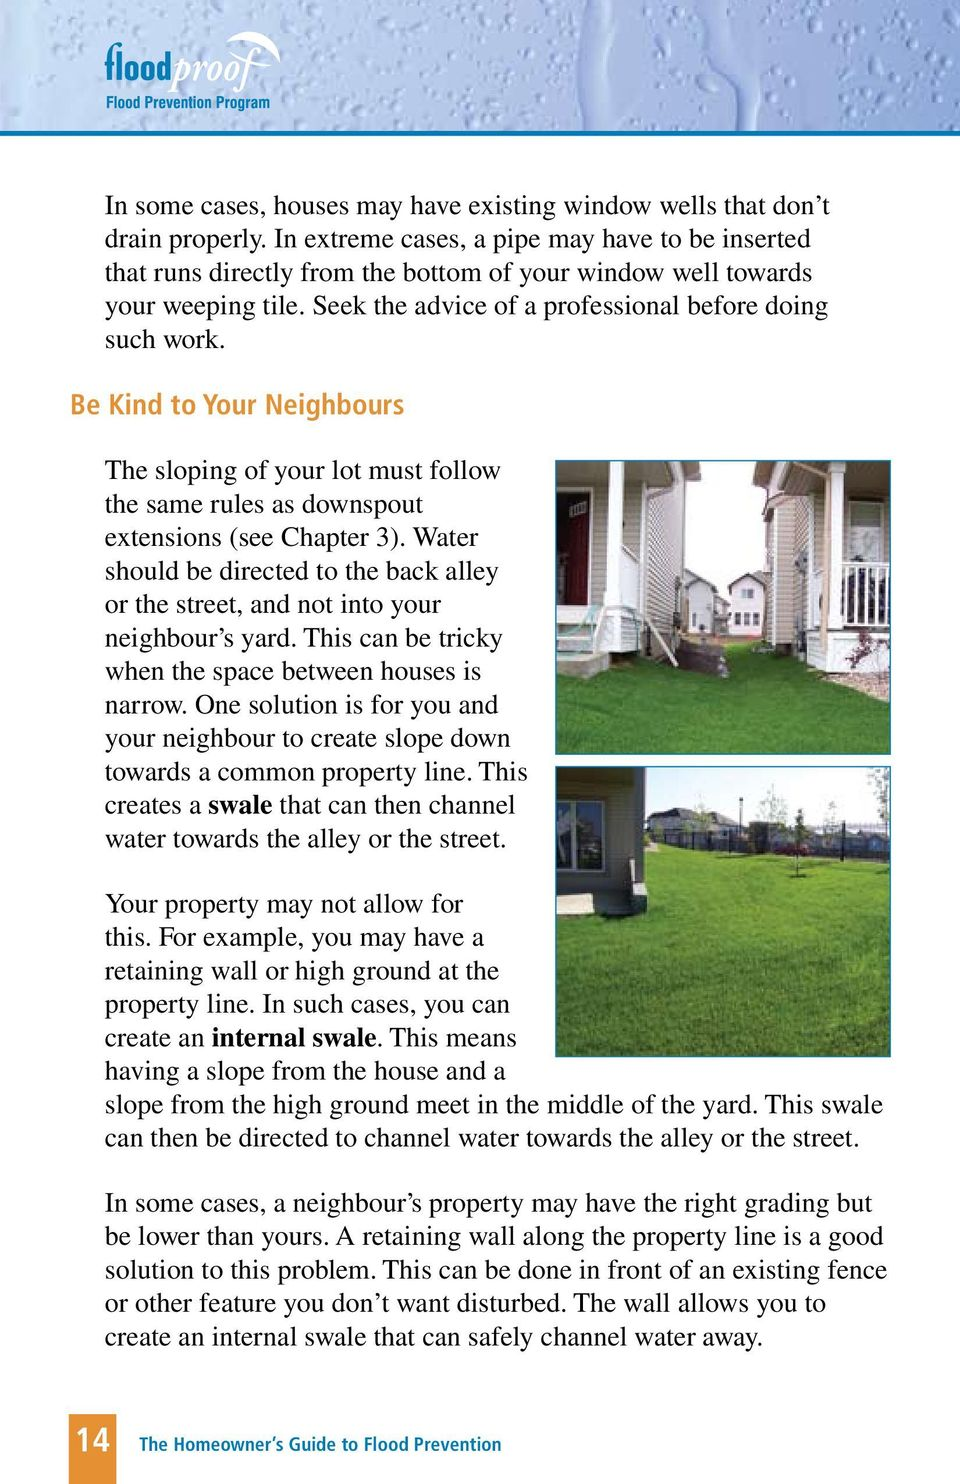 Be Kind to Your Neighbours The sloping of your lot must follow the same rules as downspout extensions (see Chapter 3).